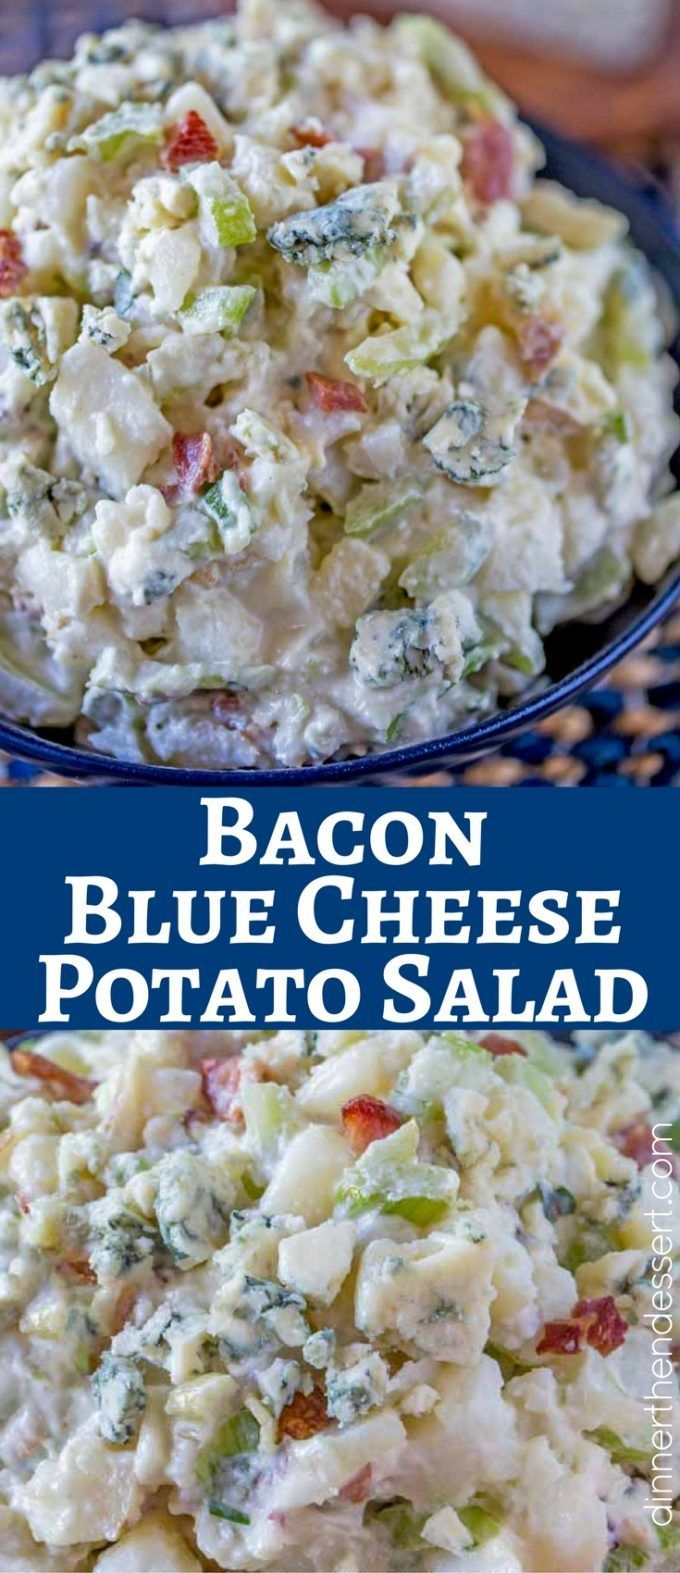 Bacon Blue Cheese Potato Salad takes the classic potato salad and kicks it up a notch with the flavors of bacon and blue cheese. This will be a summer bbq favorite!